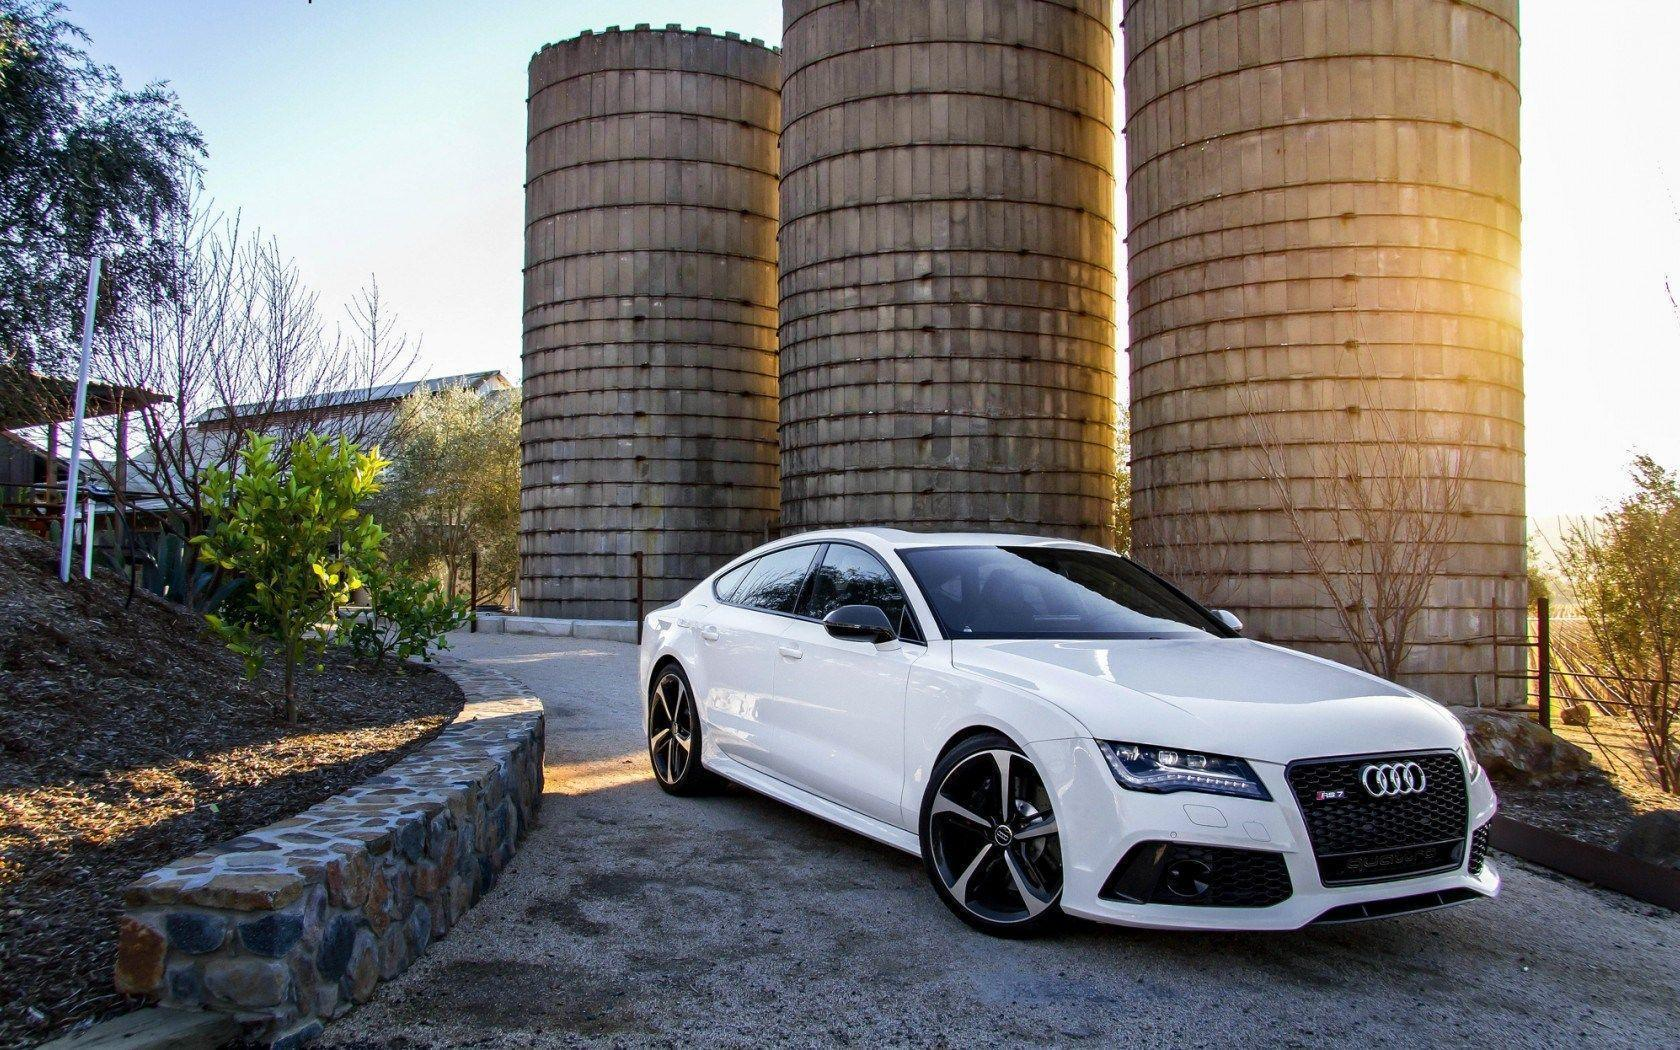 Awesome Audi RS7 Wallpapers 36961 1680x1050 px ~ HDWallSource